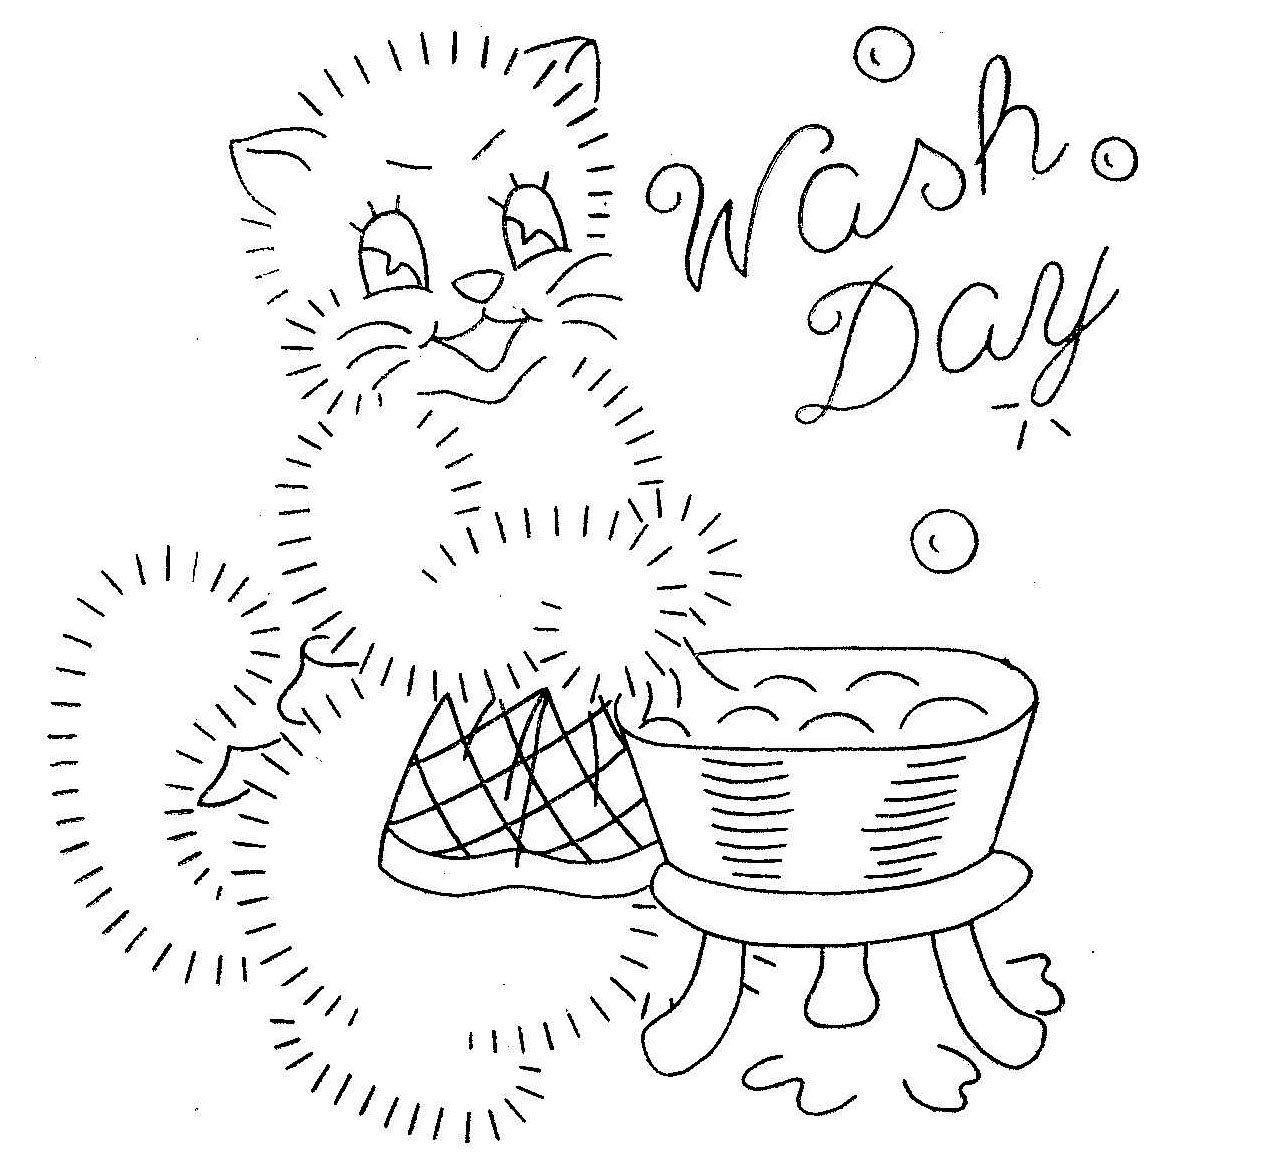 3124 hand embroidery pattern happy kittens for chore days tea vintage hand embroidery pattern 3124 kittens for tea towels monday wash bankloansurffo Images